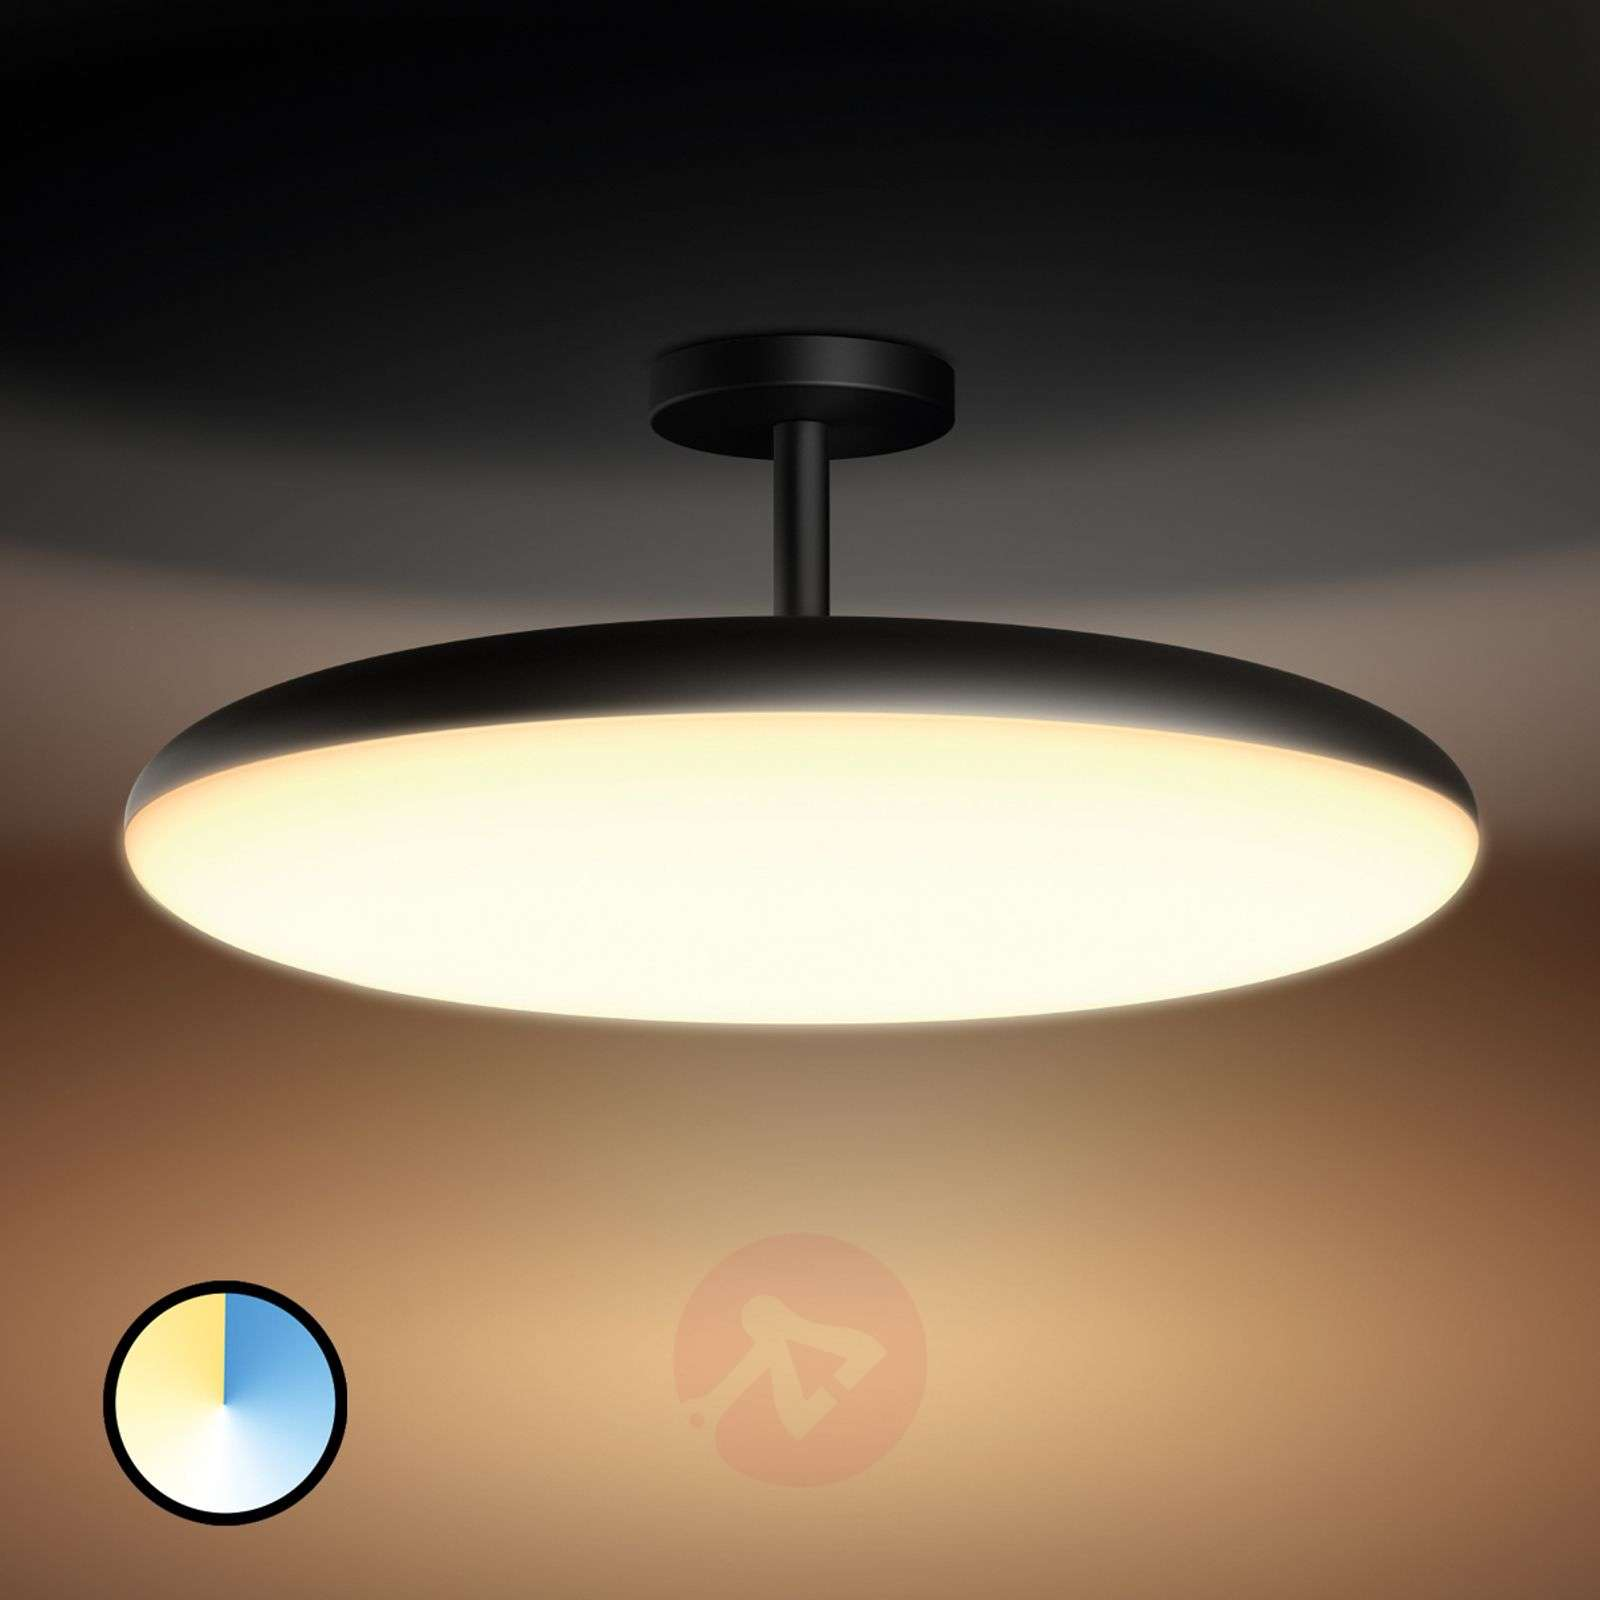 controllable philips hue led ceiling lamp cher. Black Bedroom Furniture Sets. Home Design Ideas